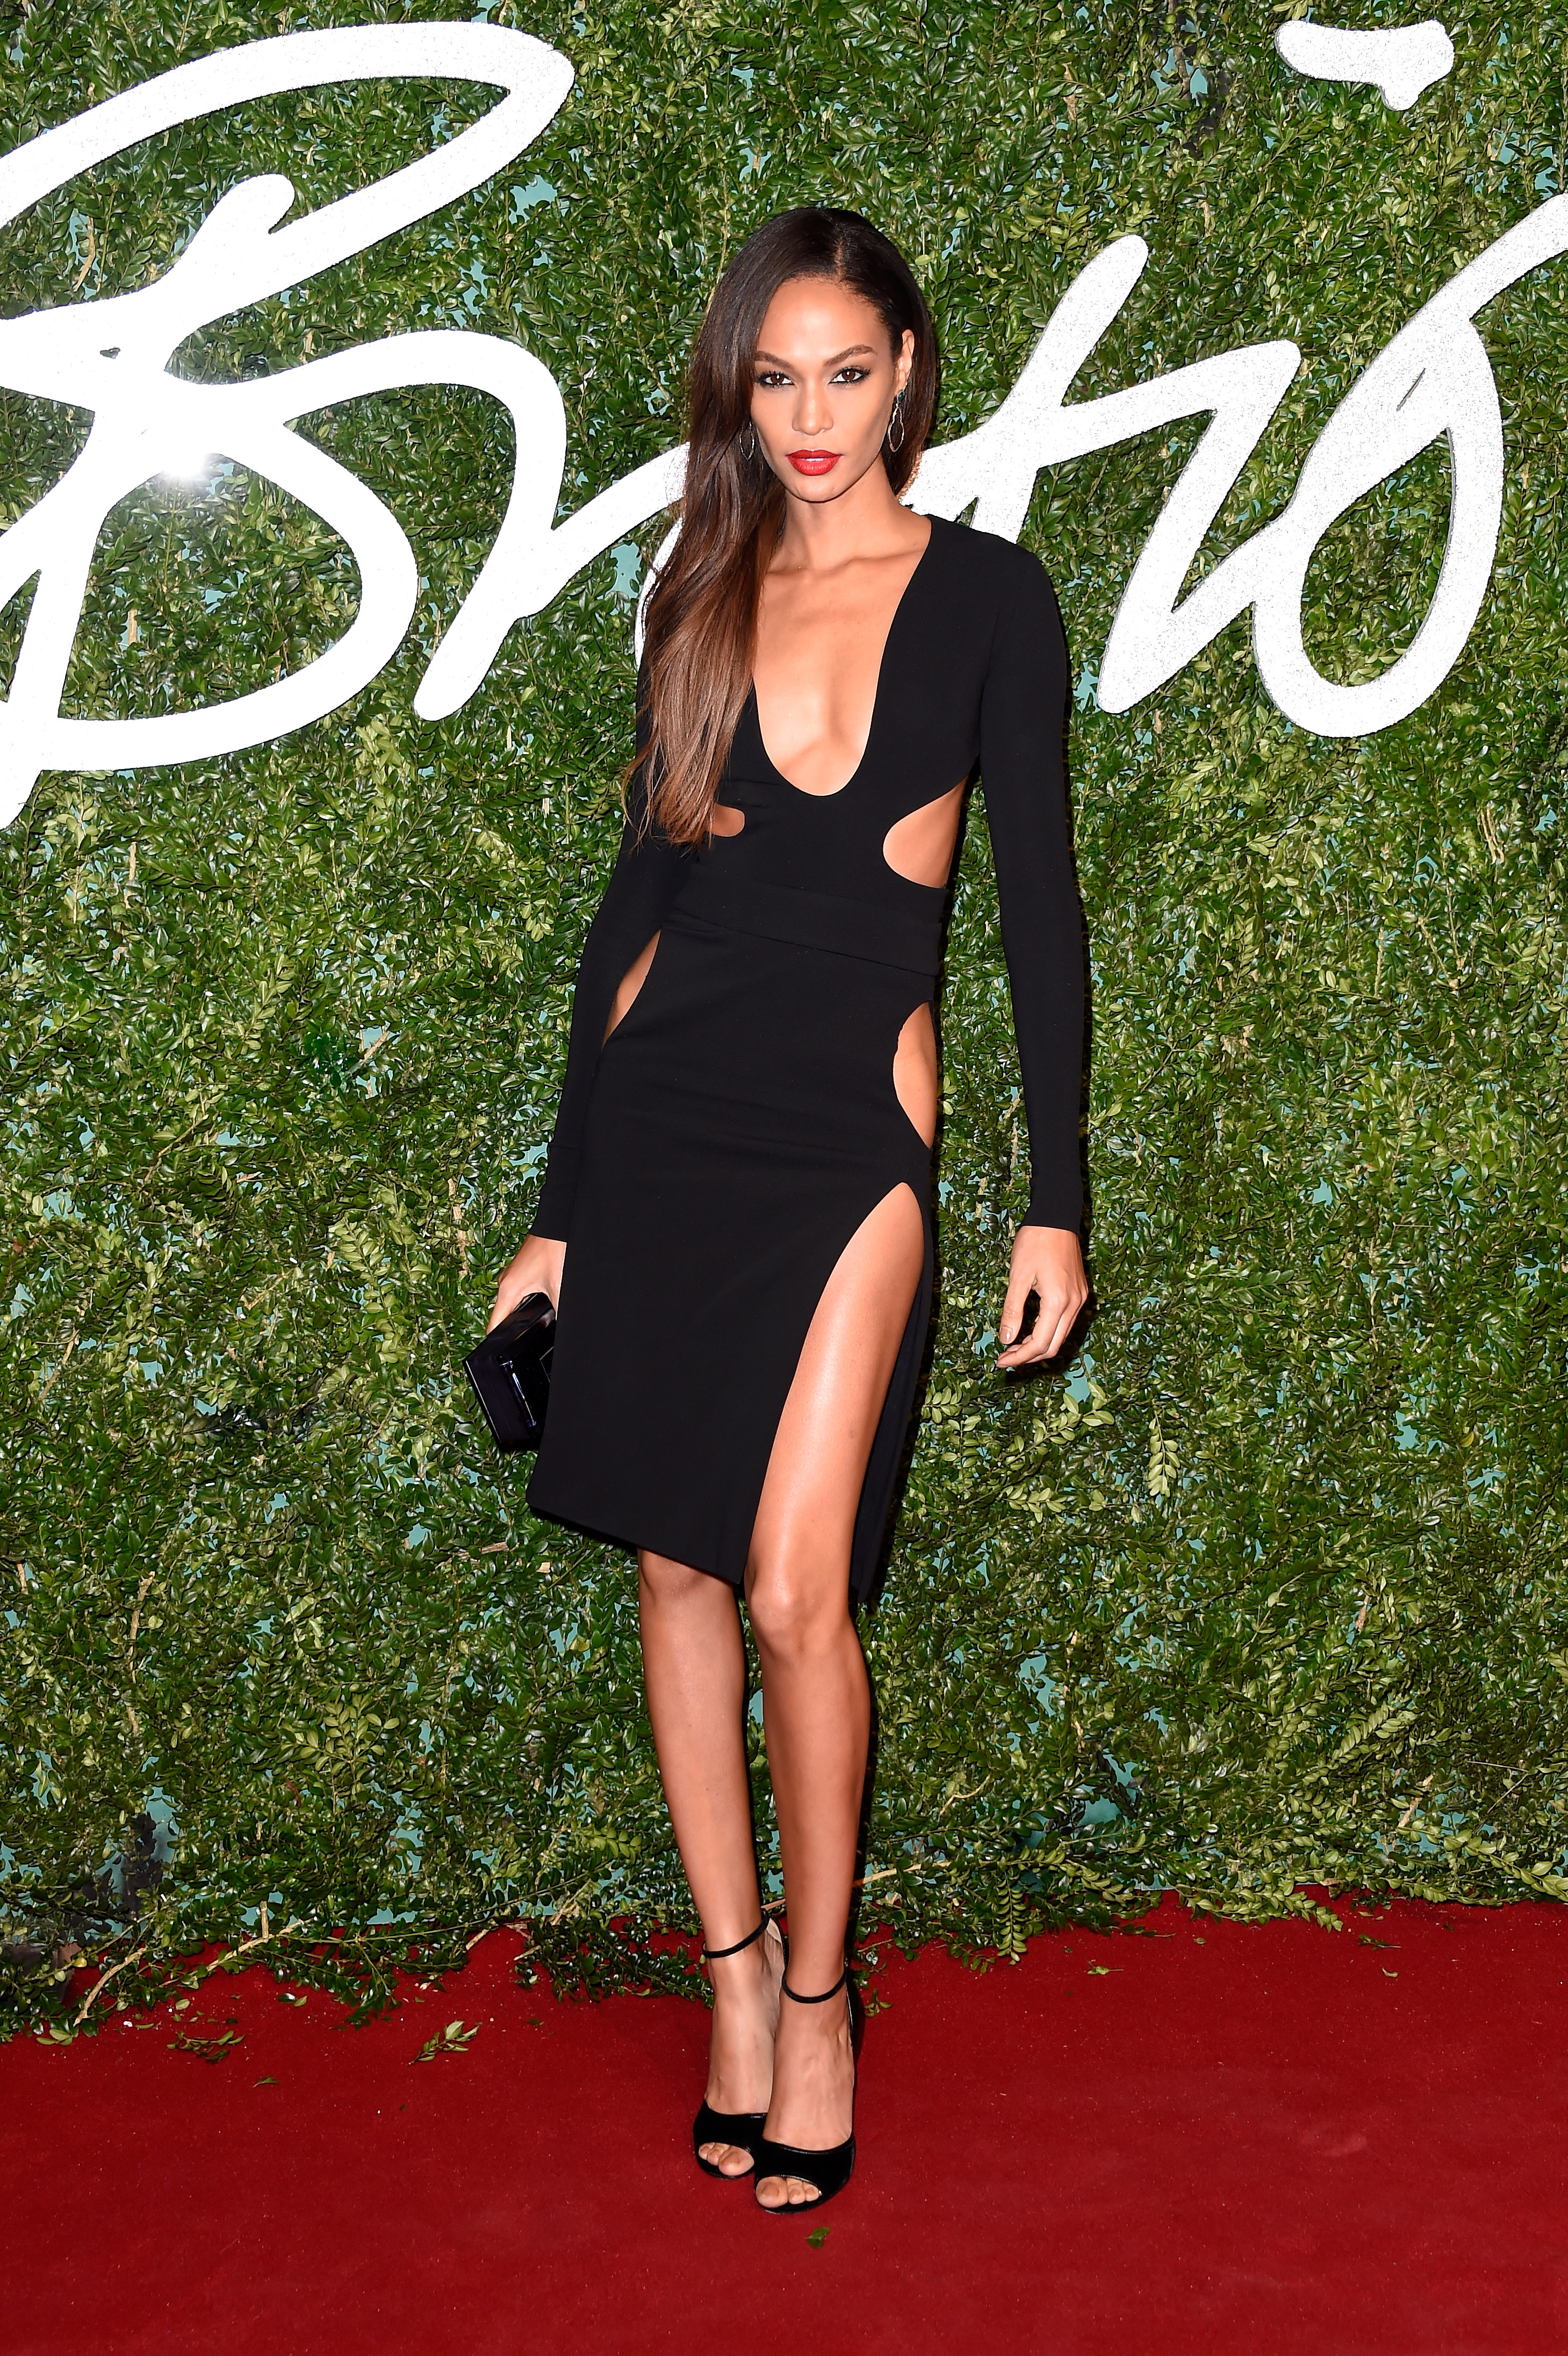 British Fashion Awards - Red Carpet Arrivals